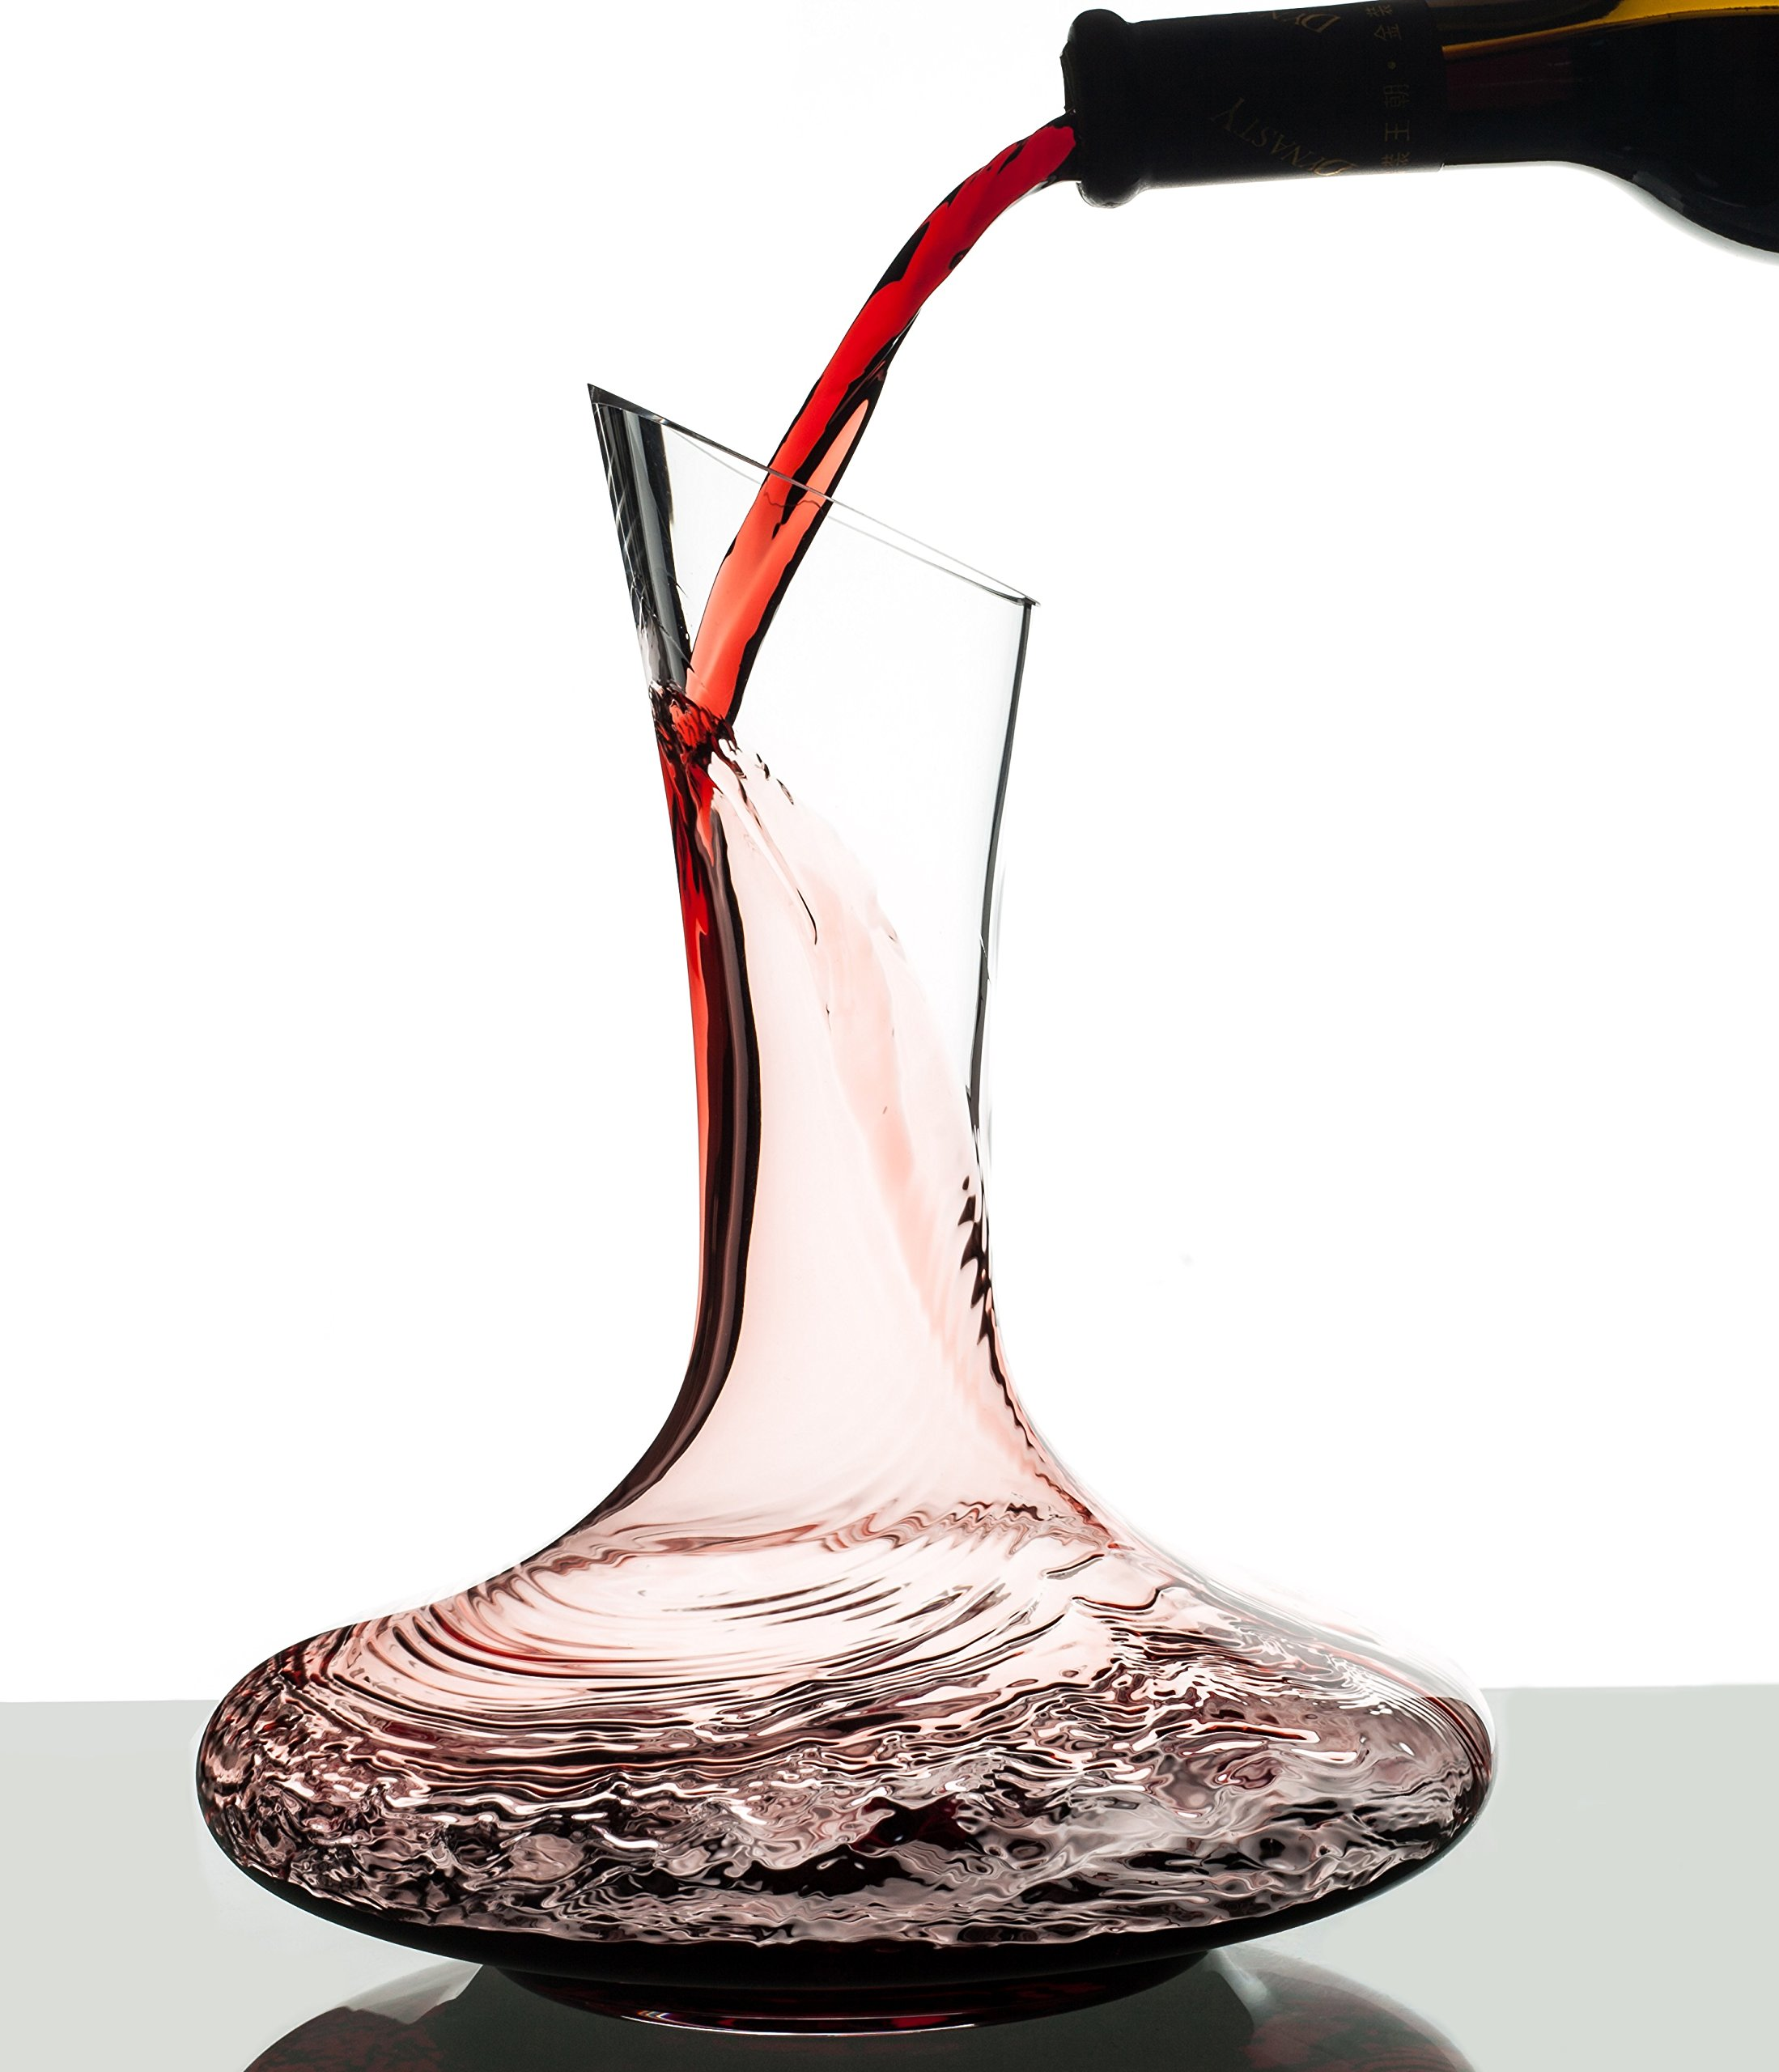 Eravino Mouth Blown Crystal Glass Wine Decanter, 750ml